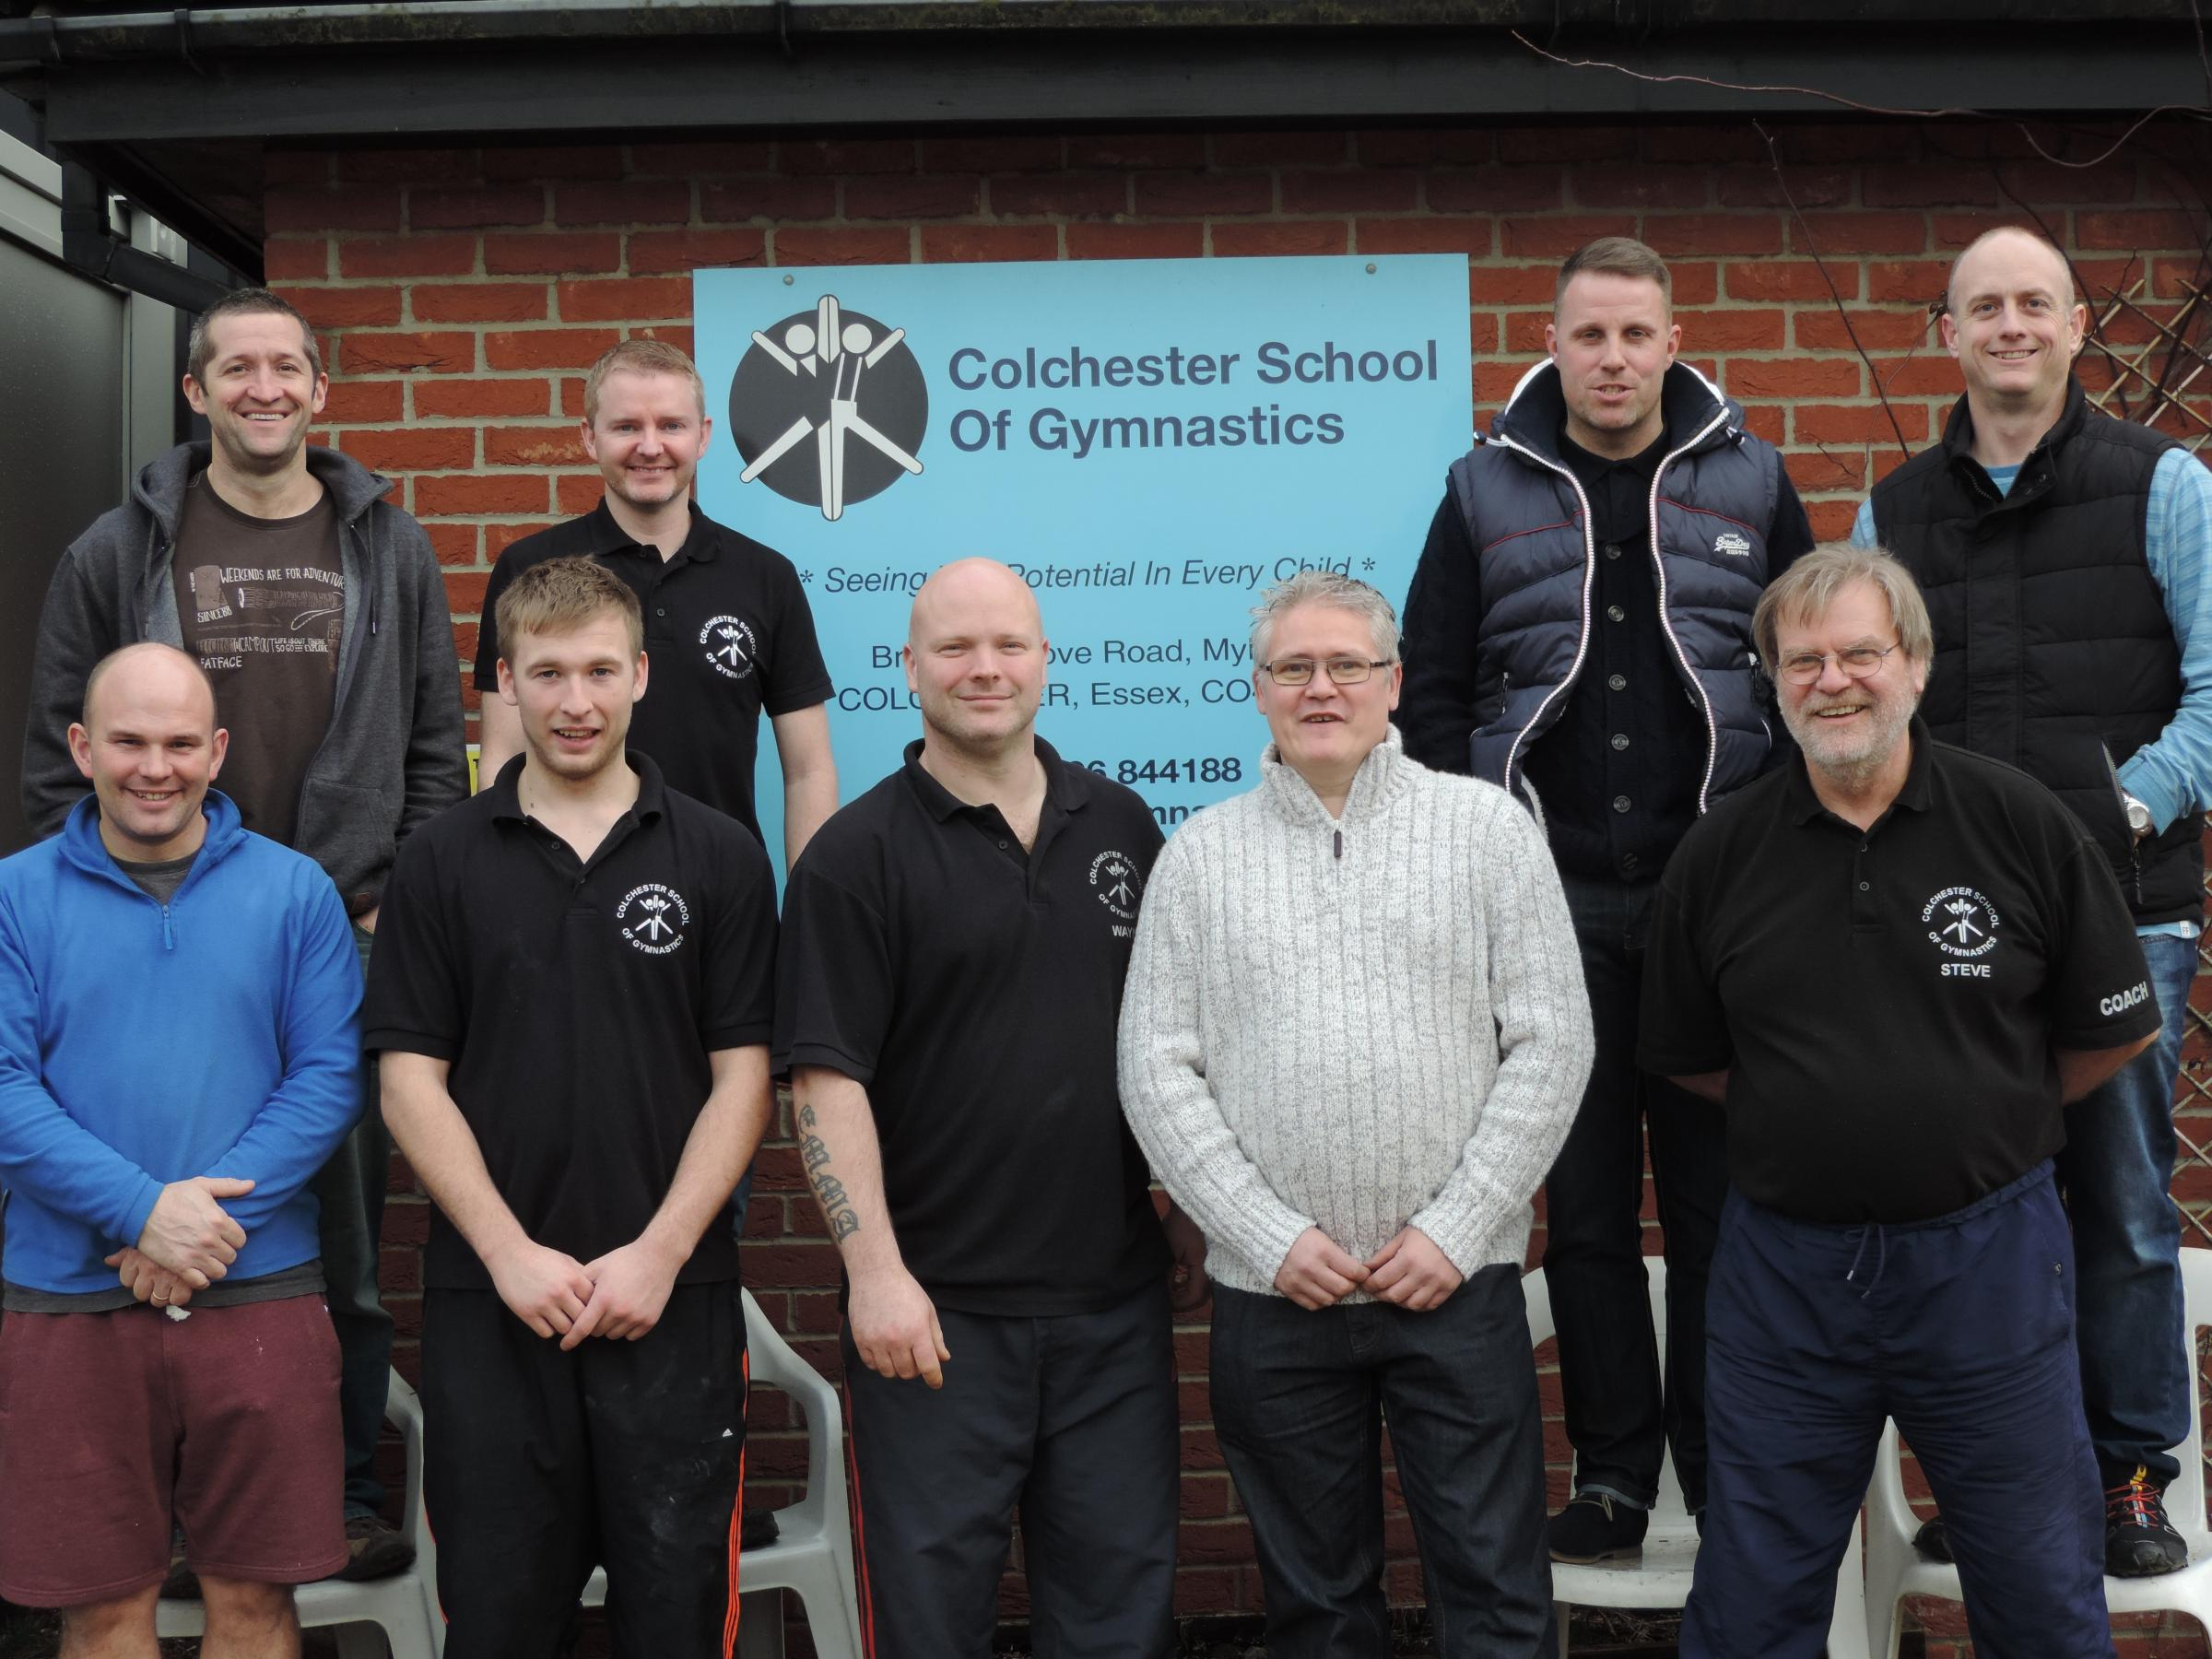 Dads and coaches to brave a wax for gymnastics club fundraiser